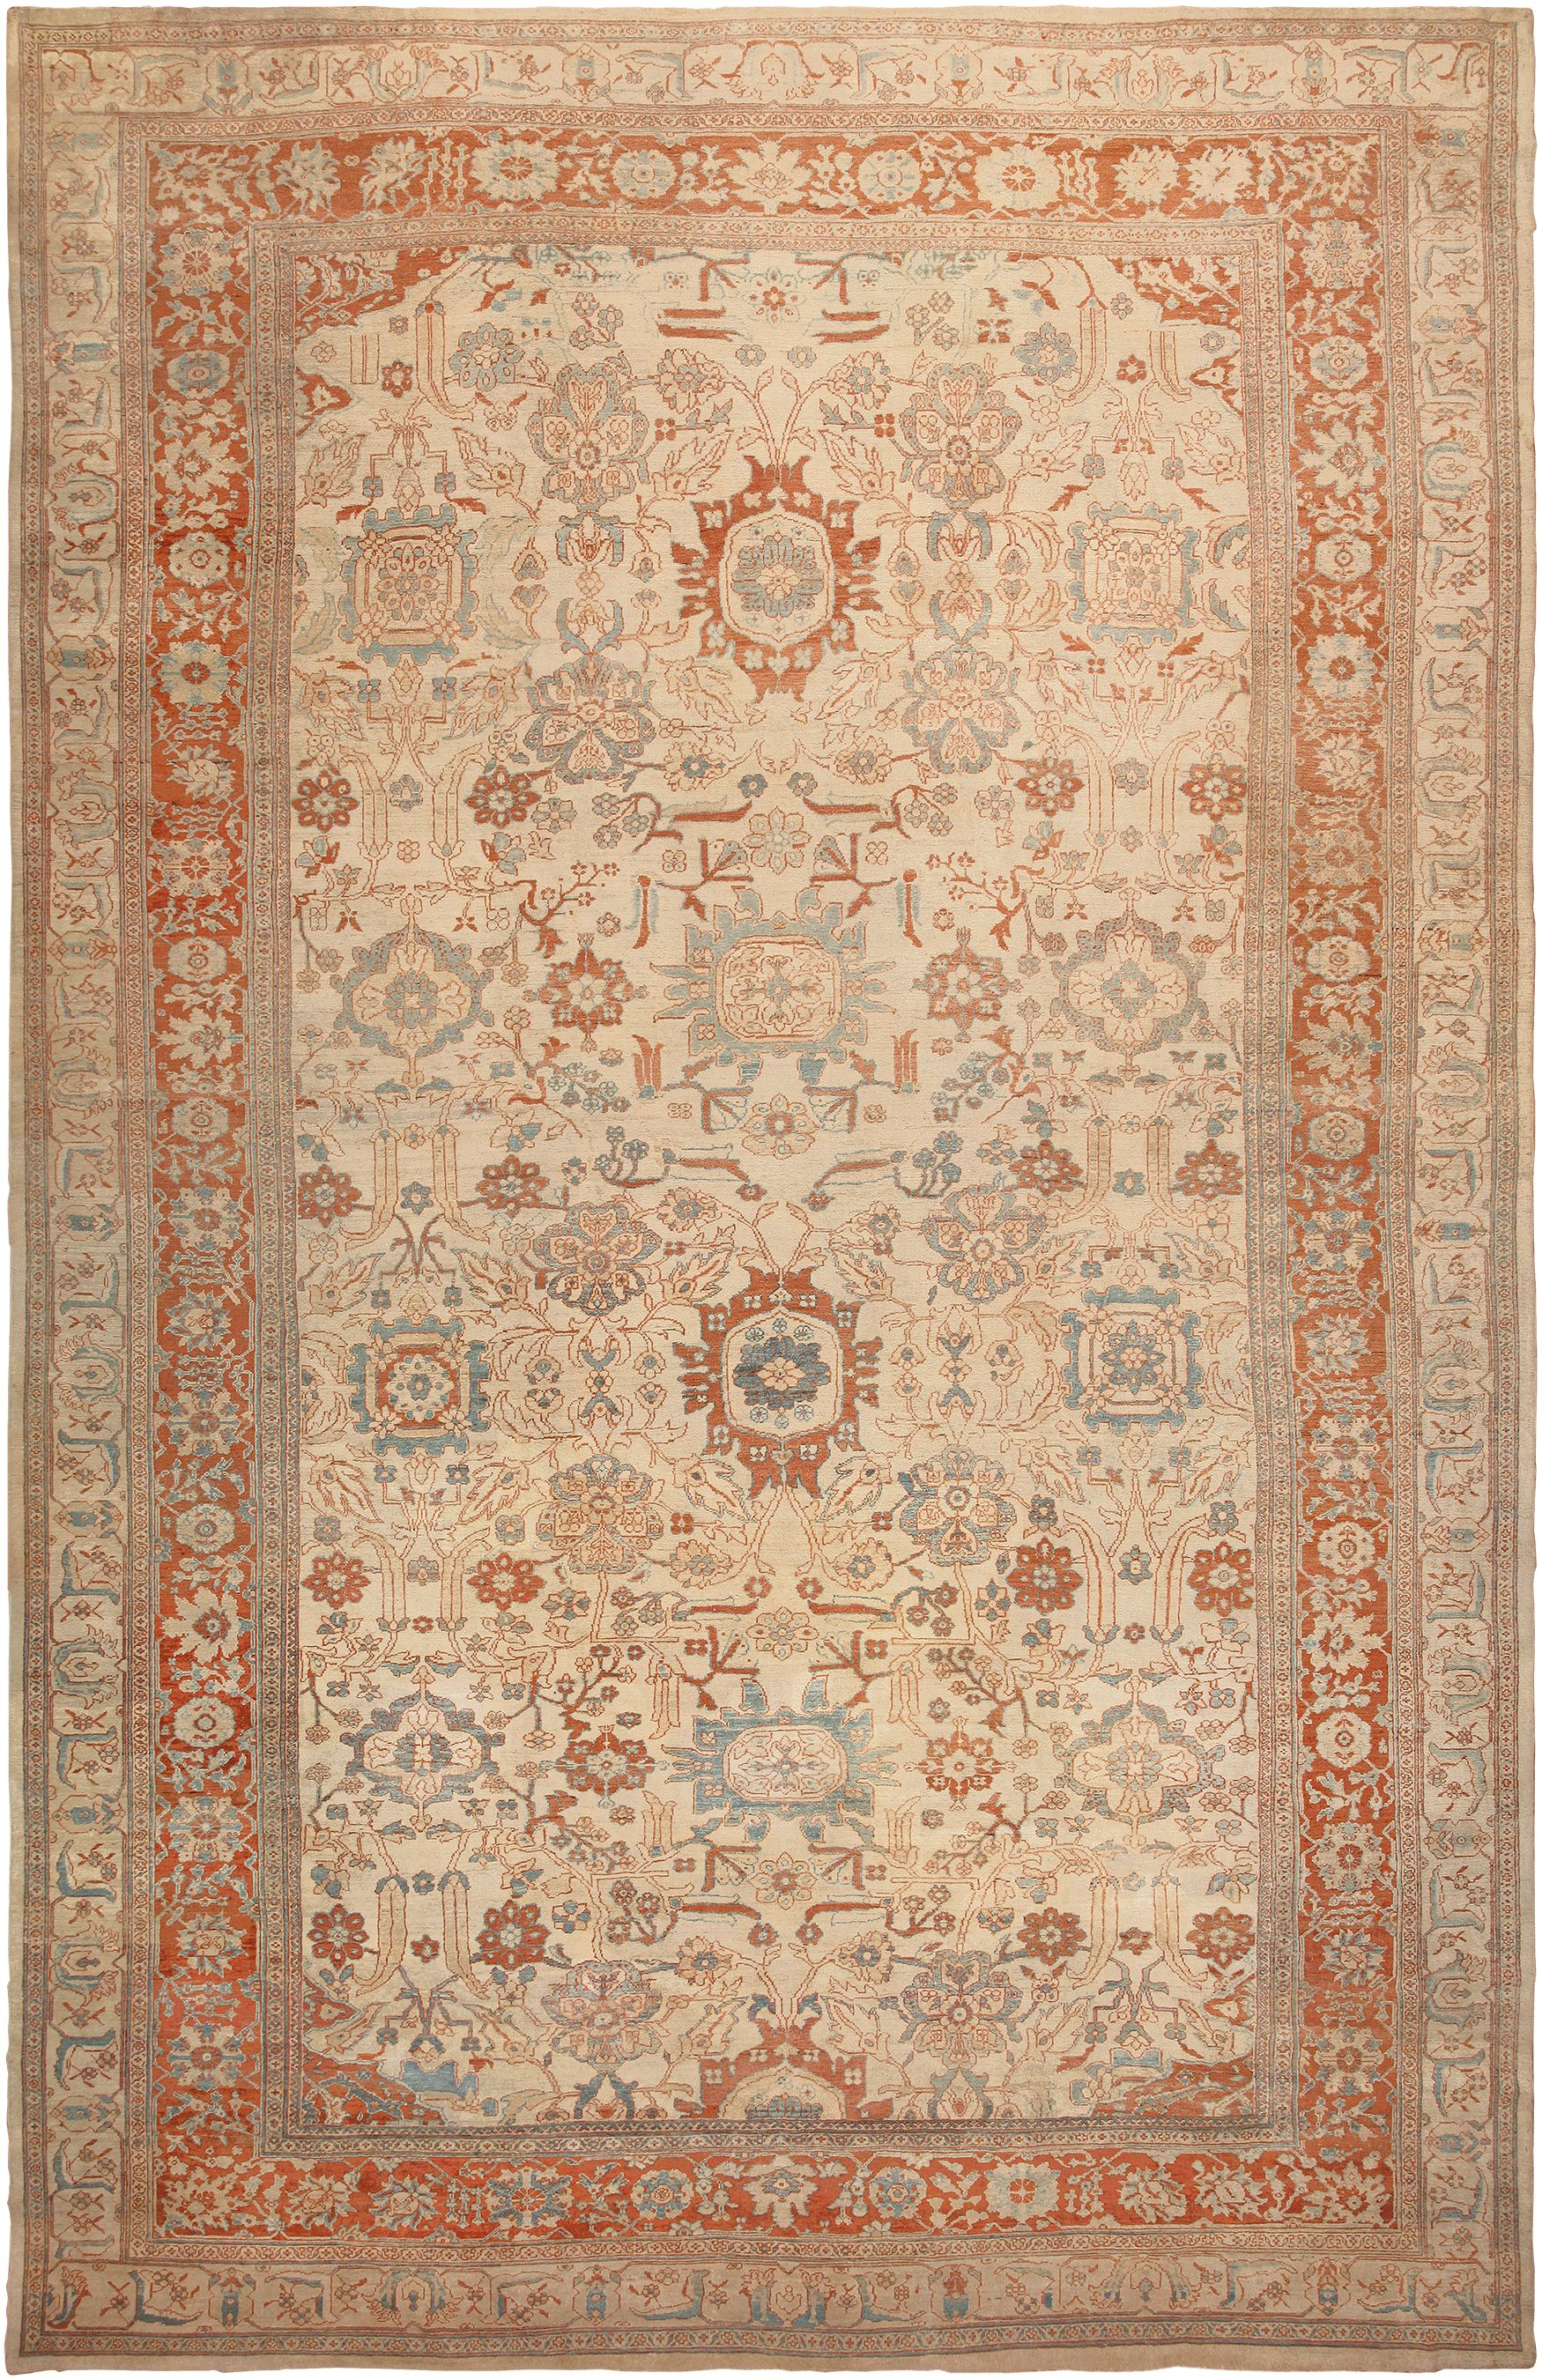 Ziegler Sultanabad Antique Mahal Rug 46452 Nazmiyal Rugs On Carpet Sultanabad Rug Rugs